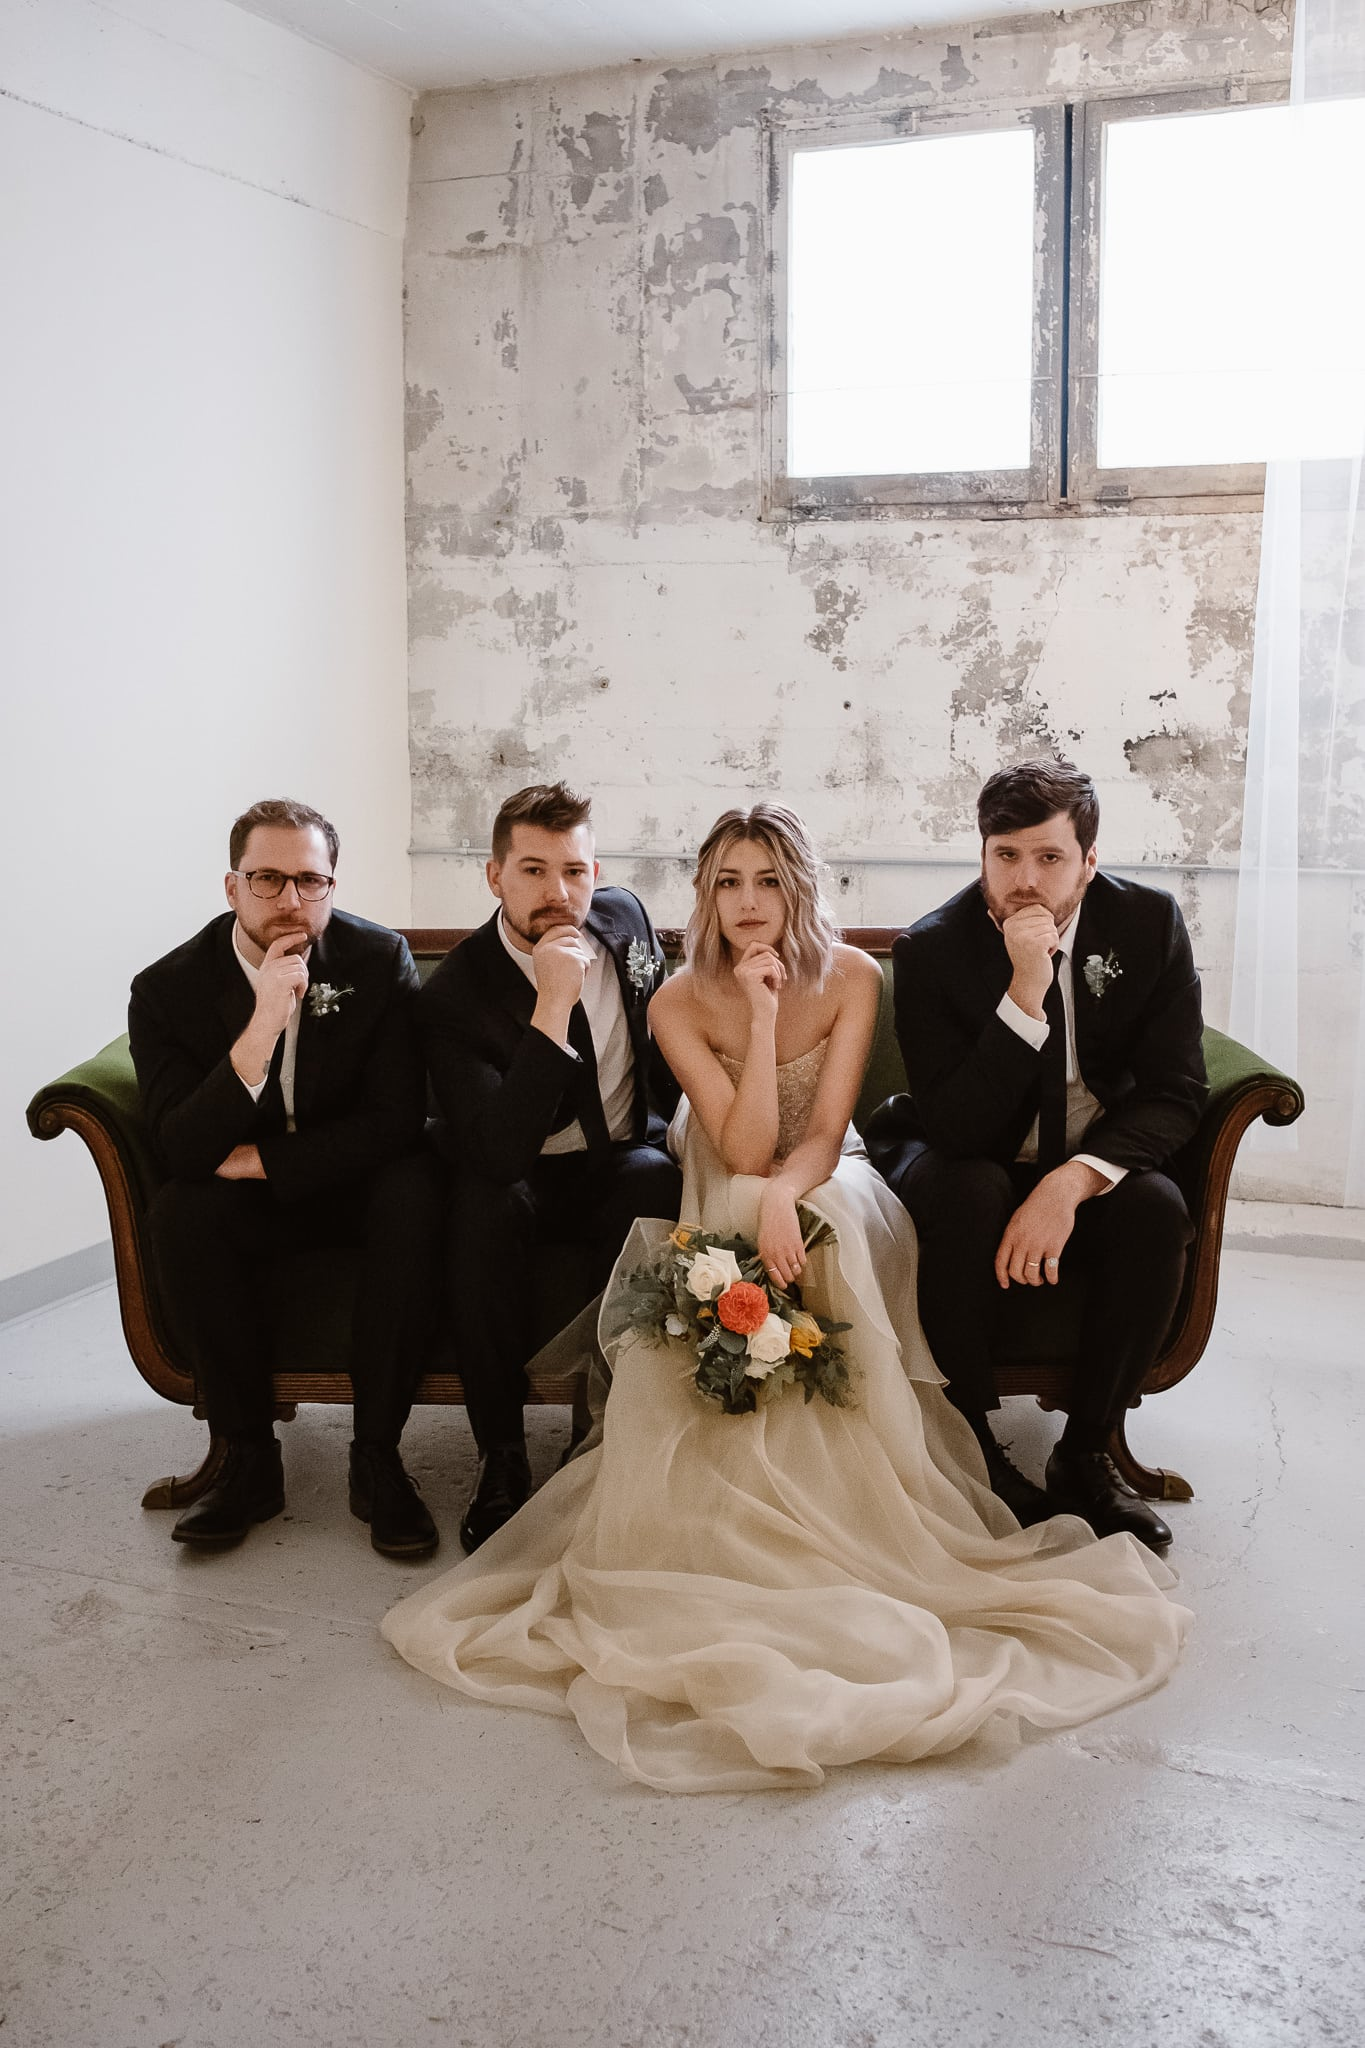 St Vrain Wedding Photographer | Longmont Wedding Photographer | Colorado Winter Wedding Photographer, Colorado industrial chic wedding, bride and groom with wedding party, Wildermiss band photo